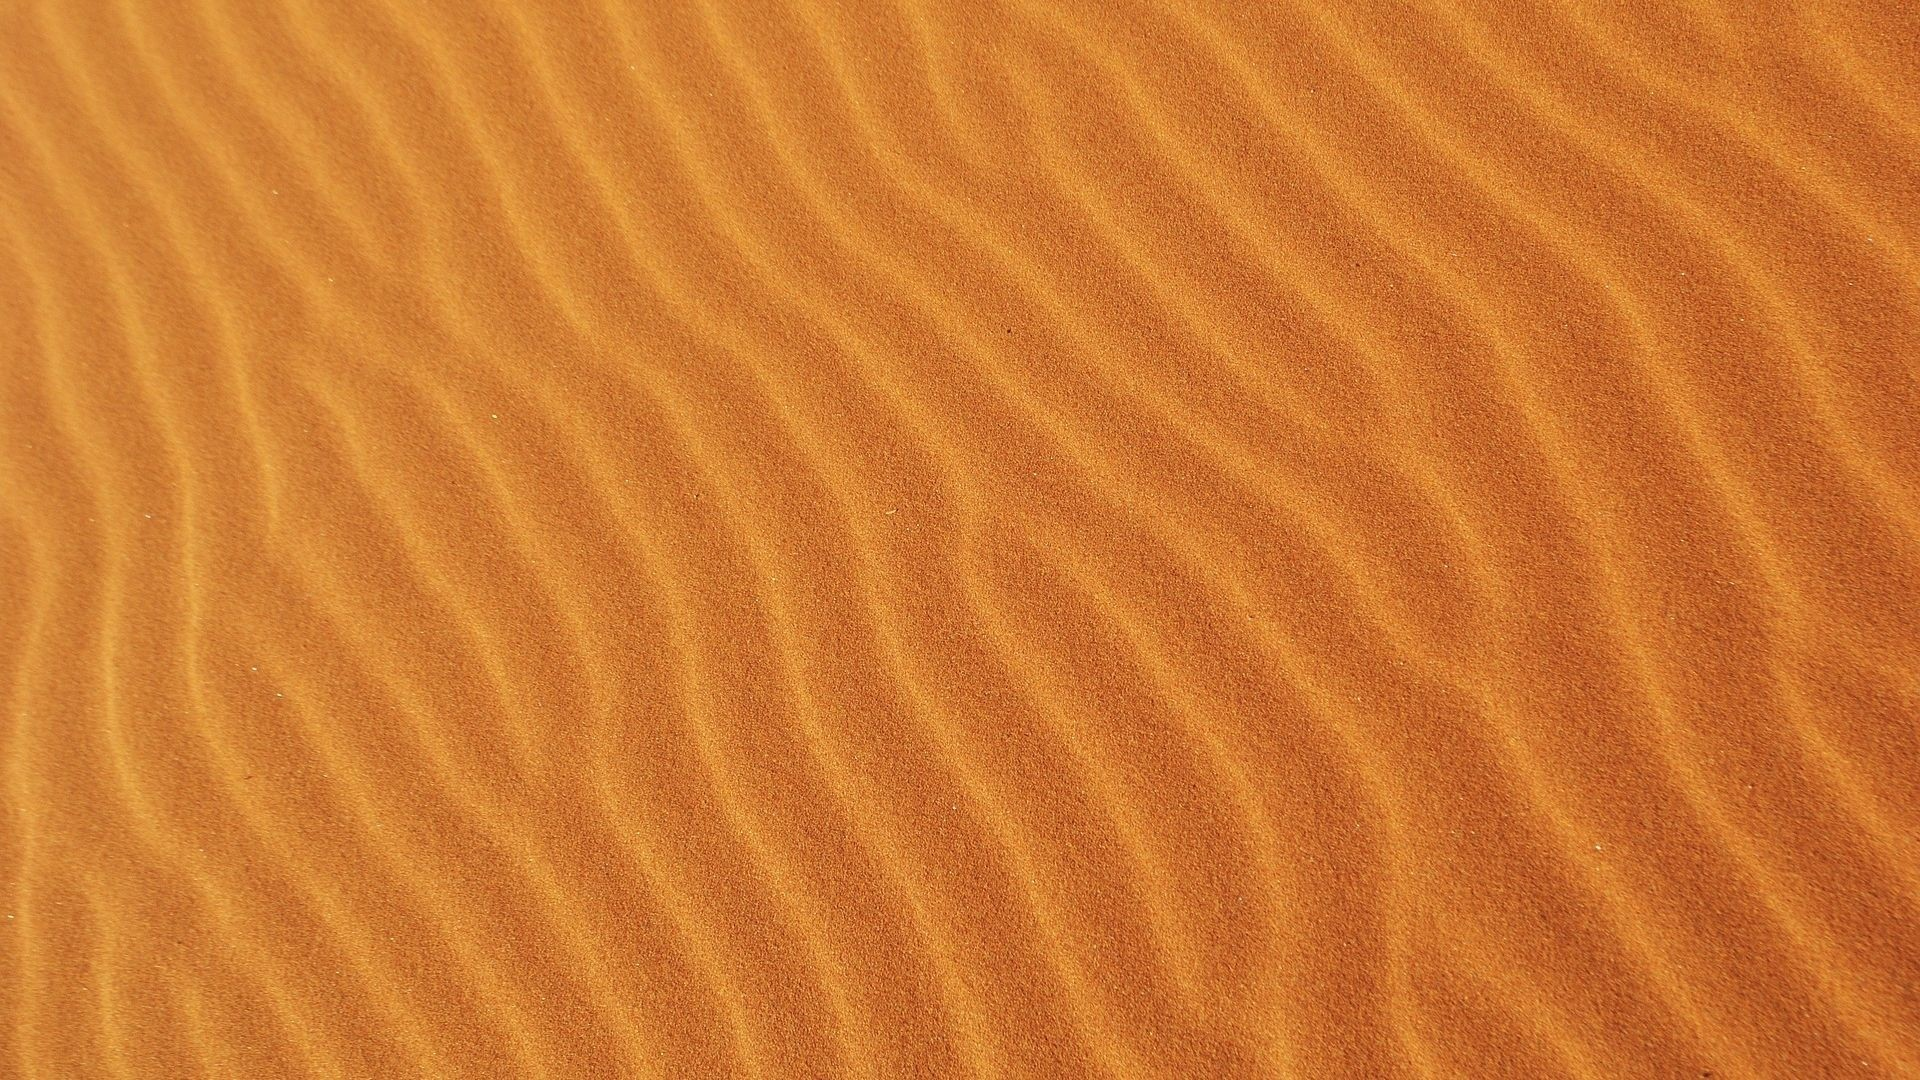 Texture Sand Image